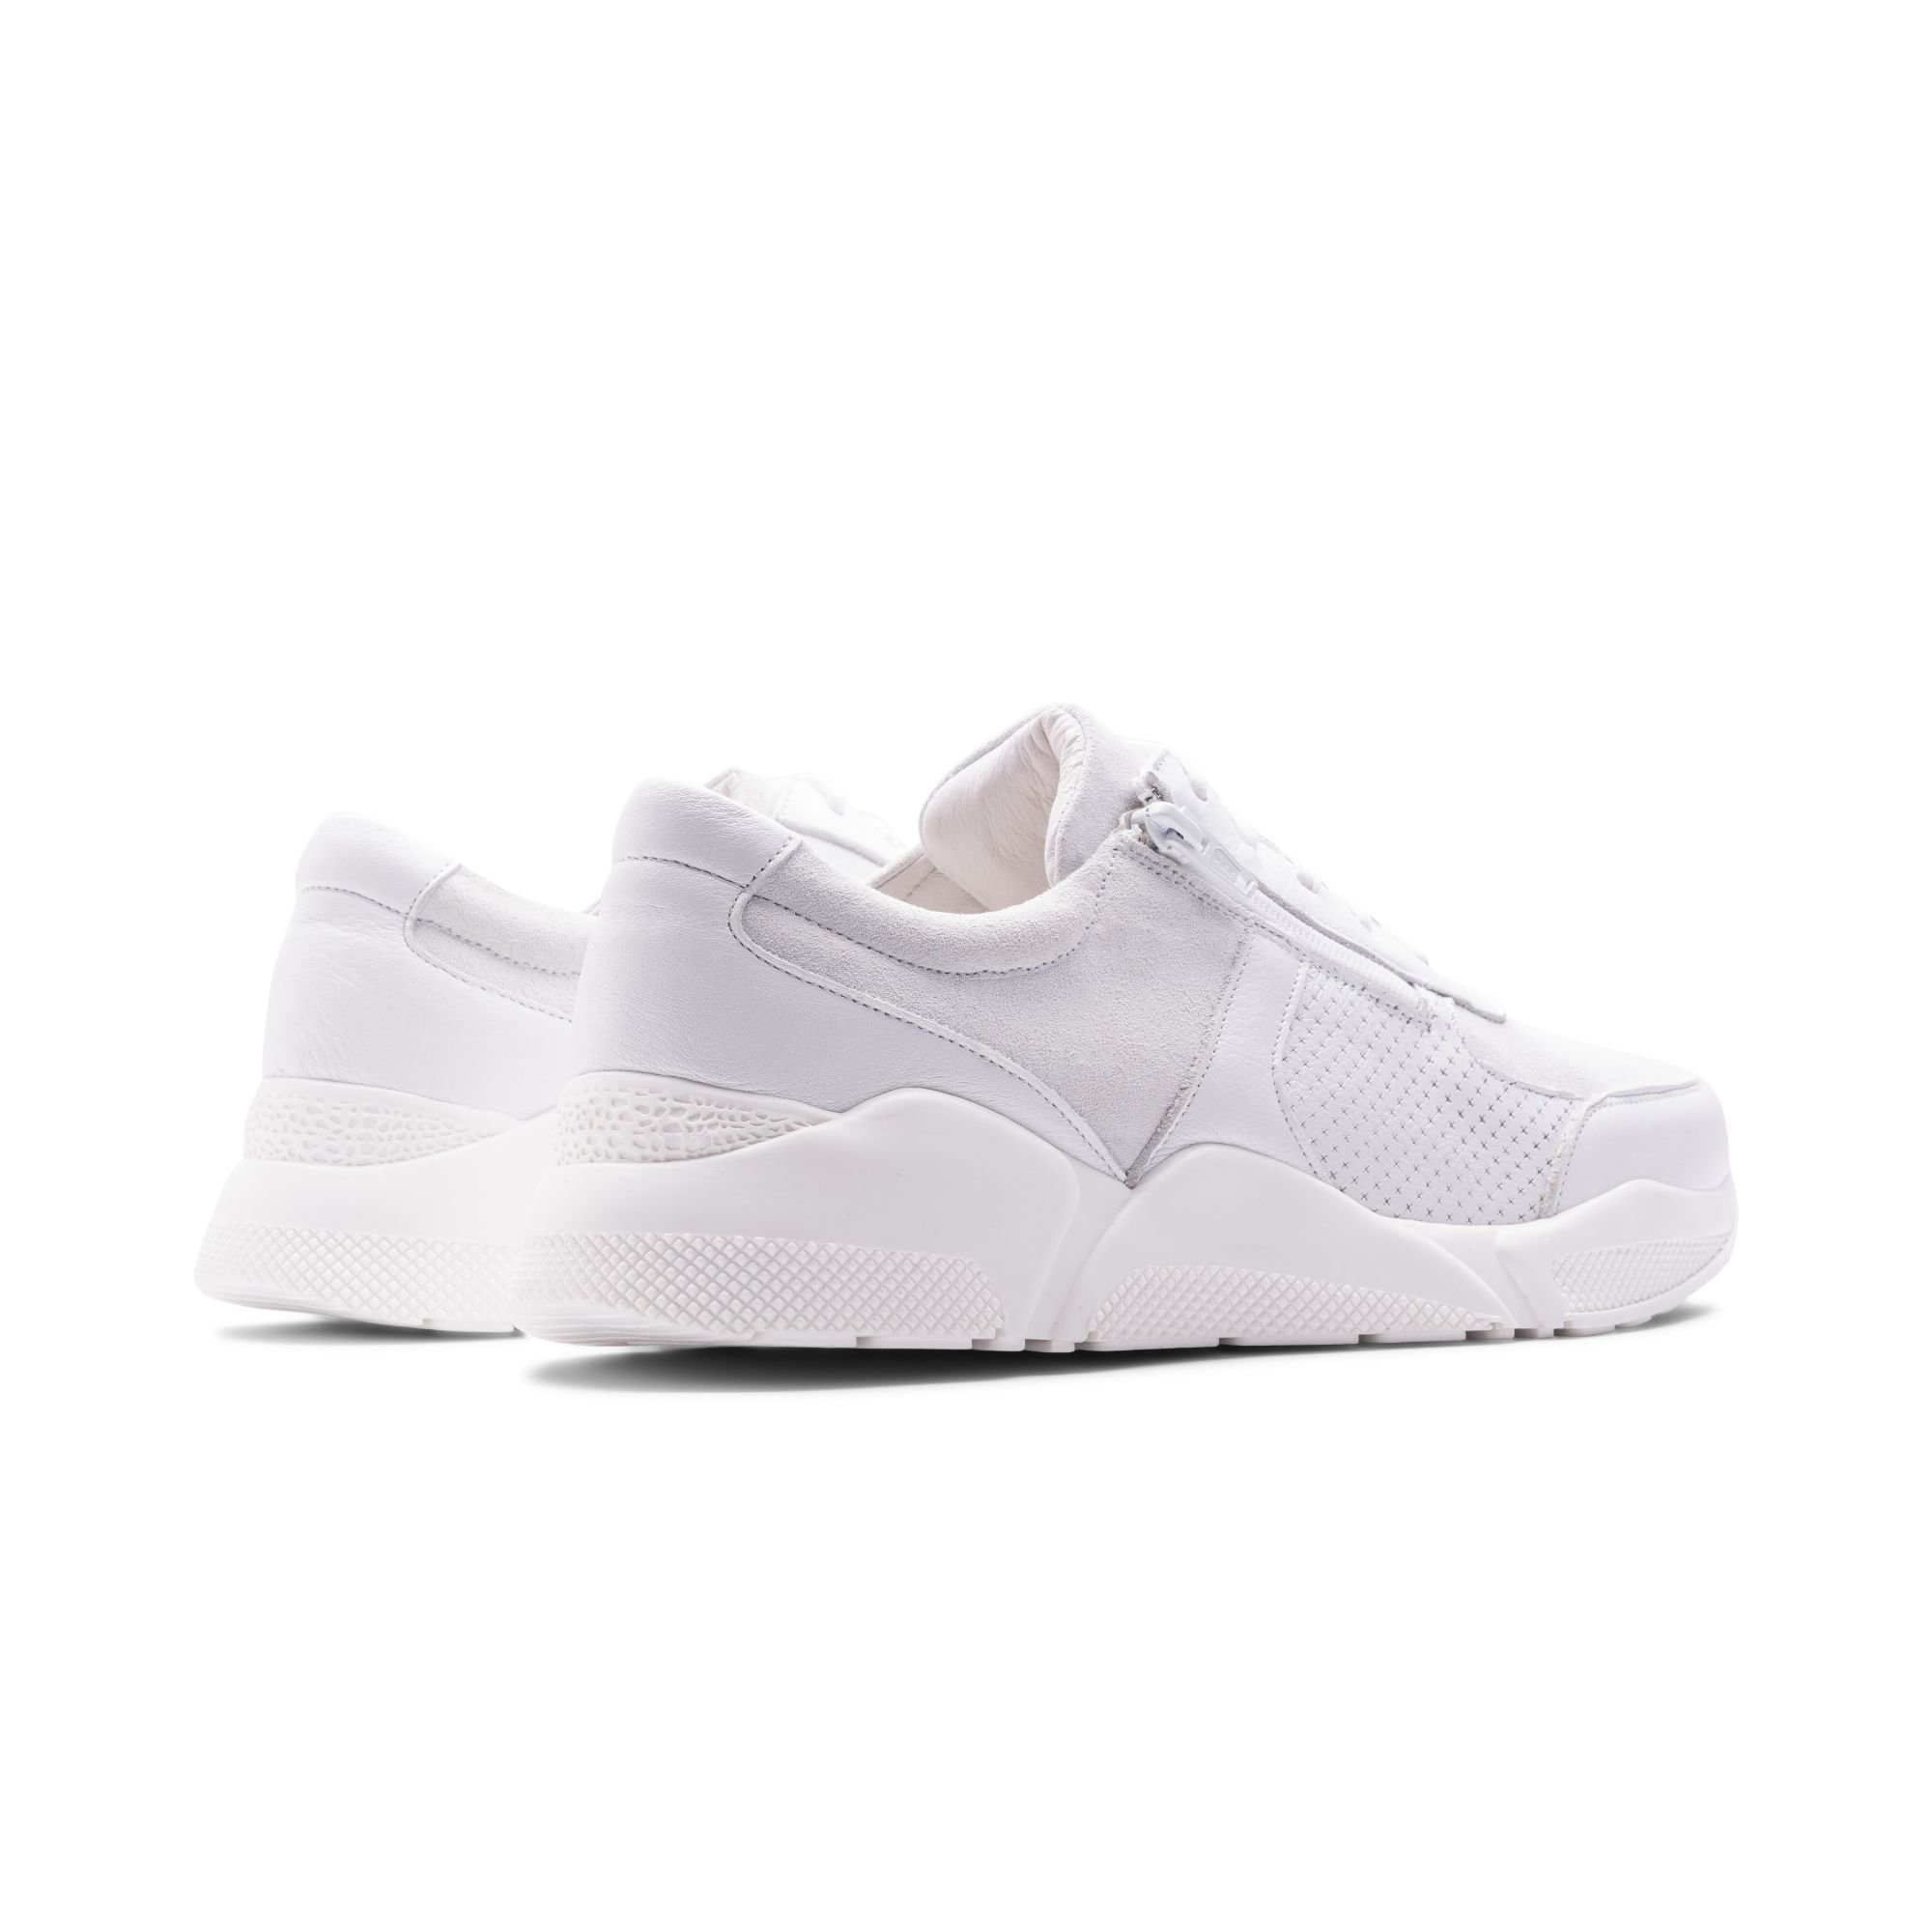 22012-anil-suede-white_02